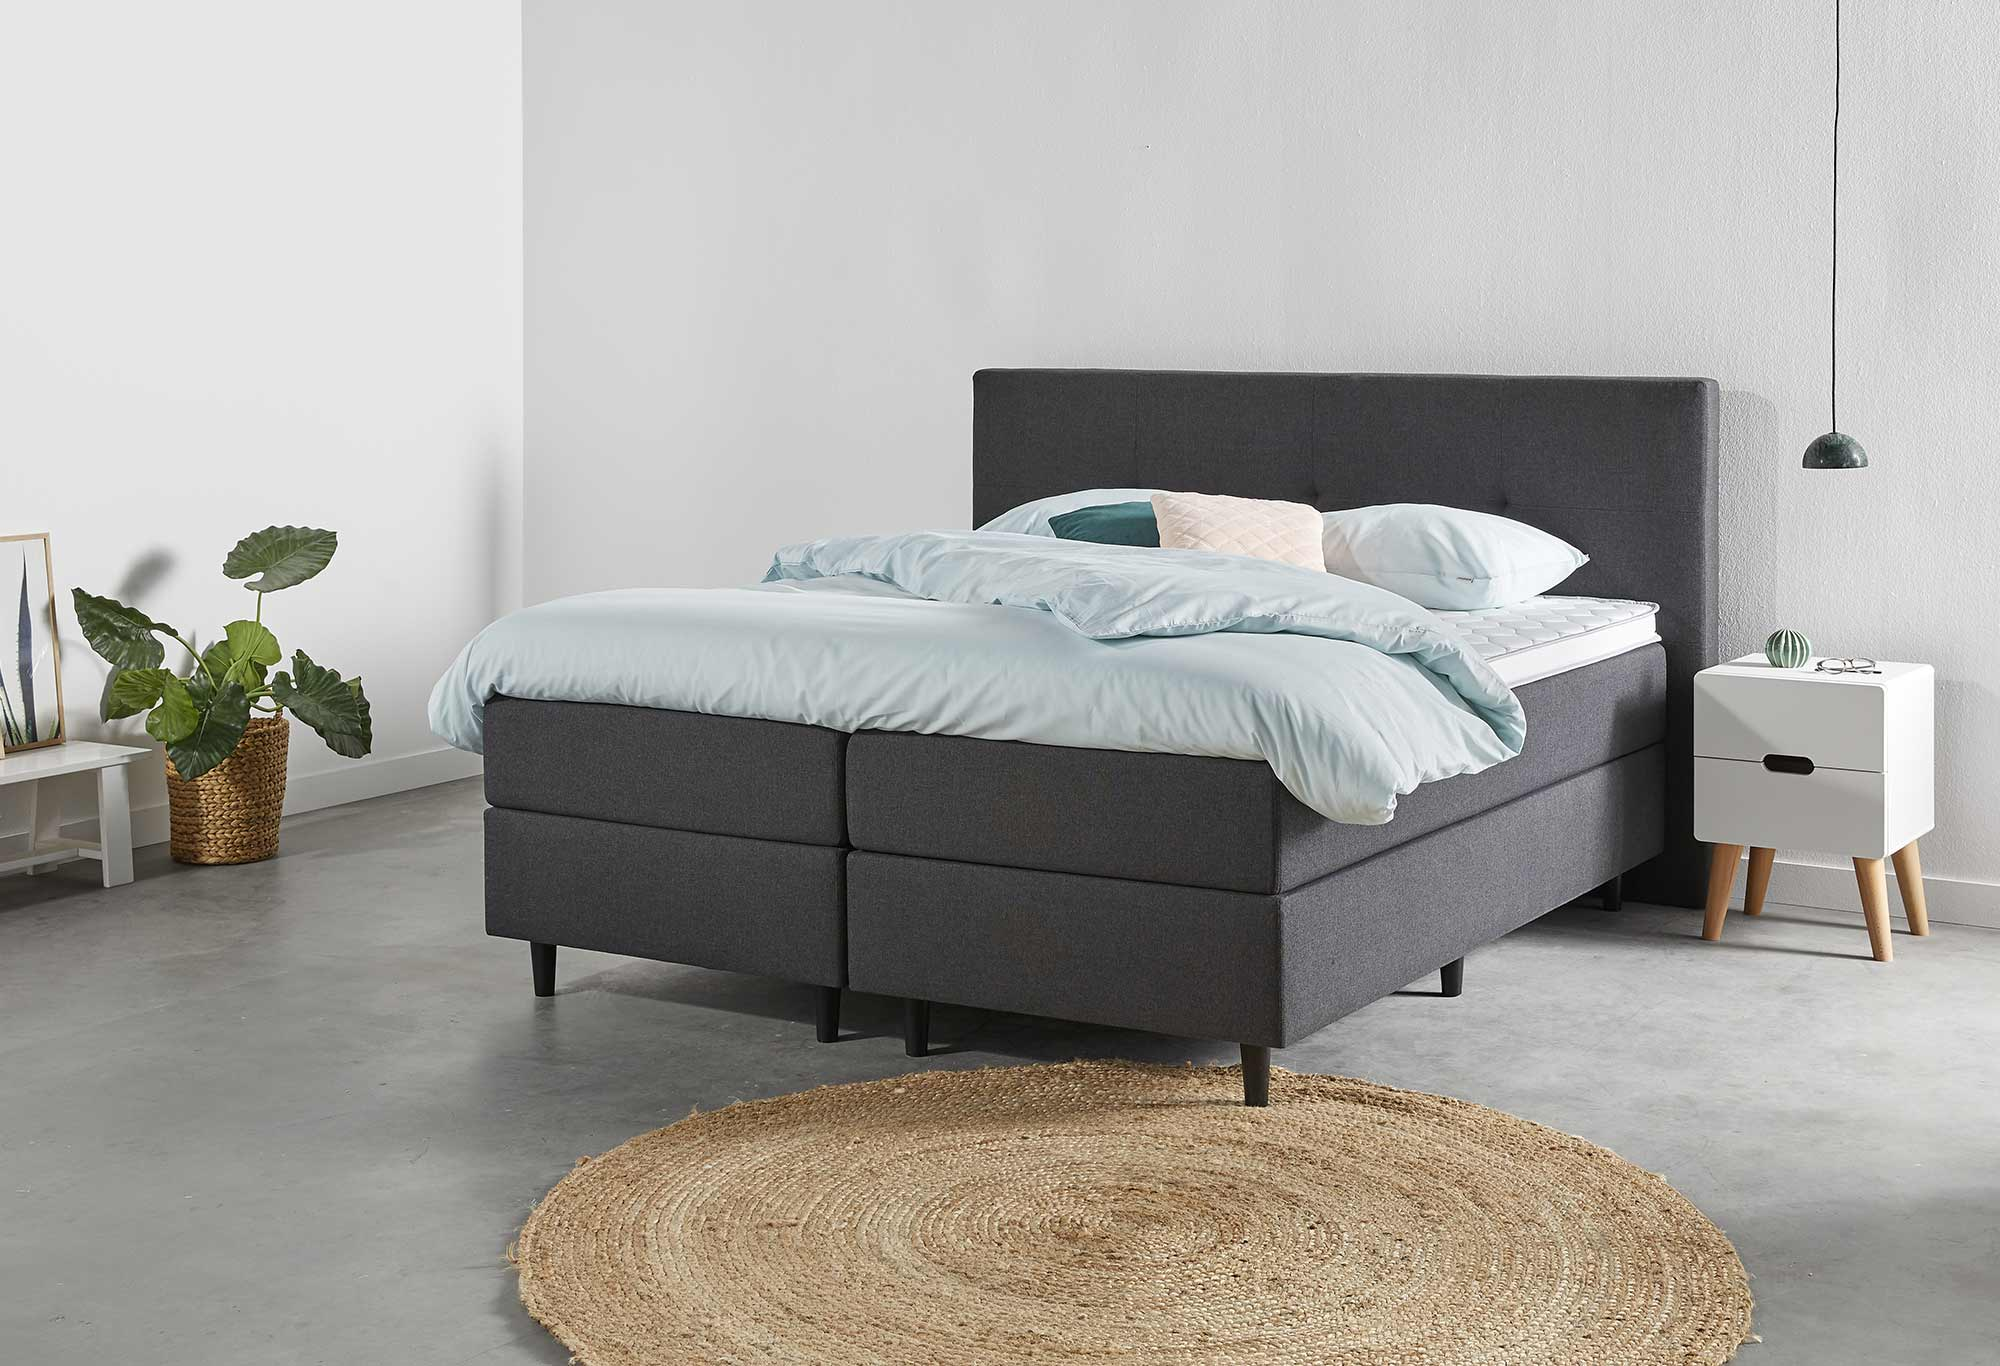 Boxspringbett Web-Only Spirit Deluxe | Swiss Sense